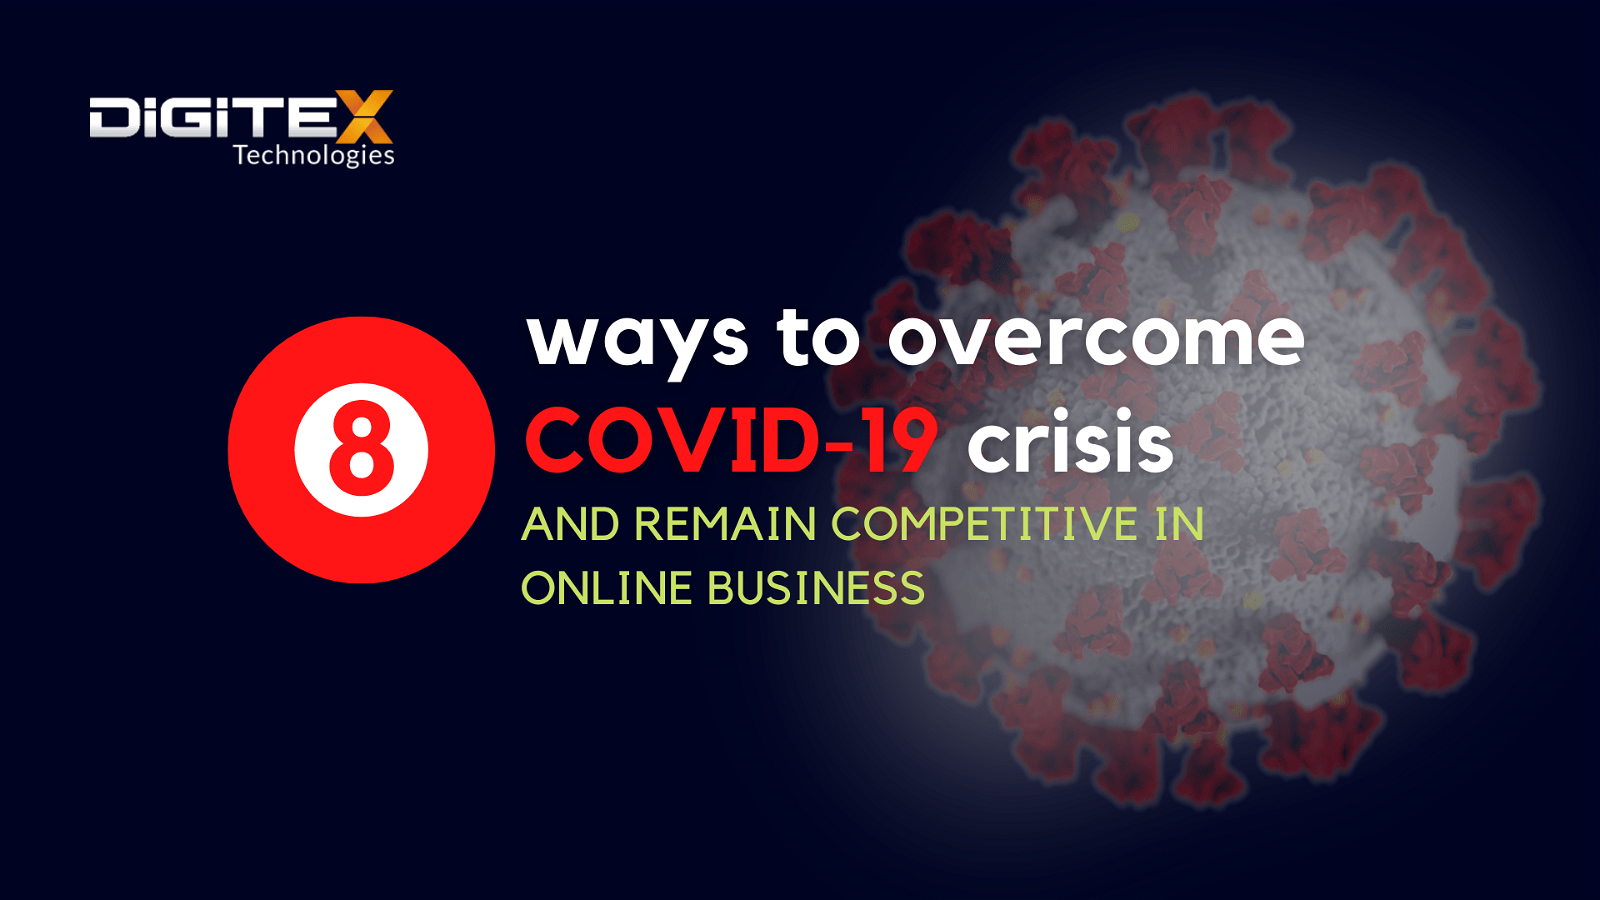 Top 8 Ways To Overcome COVID-19 Crisis And Remain Competitive In Online Business